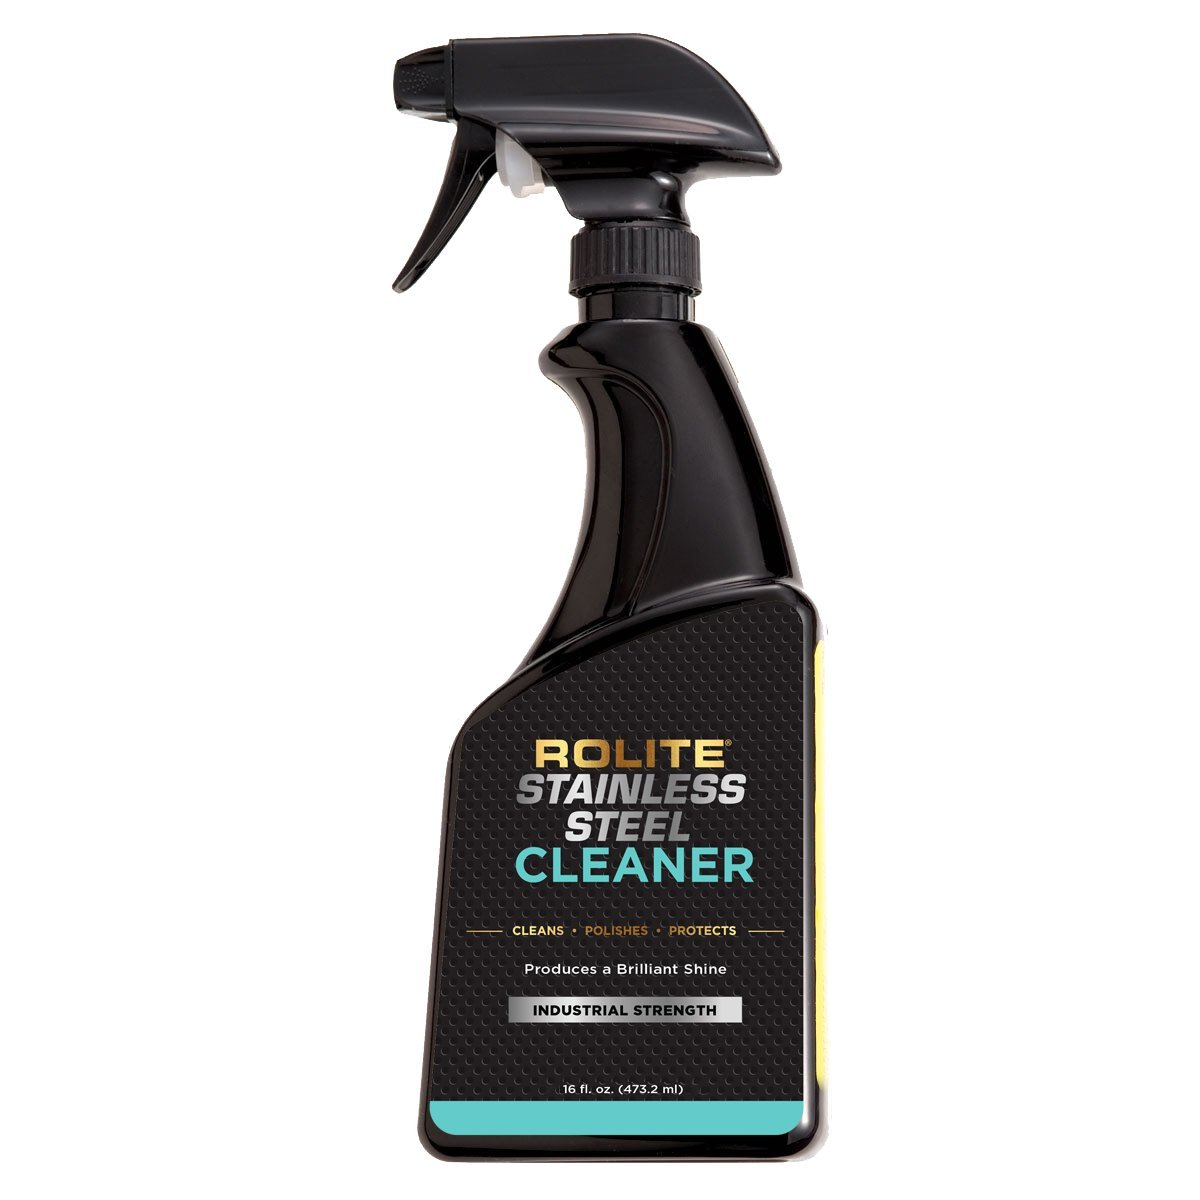 Rolite Stainless Steel Cleaner (16 fl. oz.) for a Protective, Streak-Free Shine That Removes Dirt, Grime, Residue, Water Spots & Fingerprints